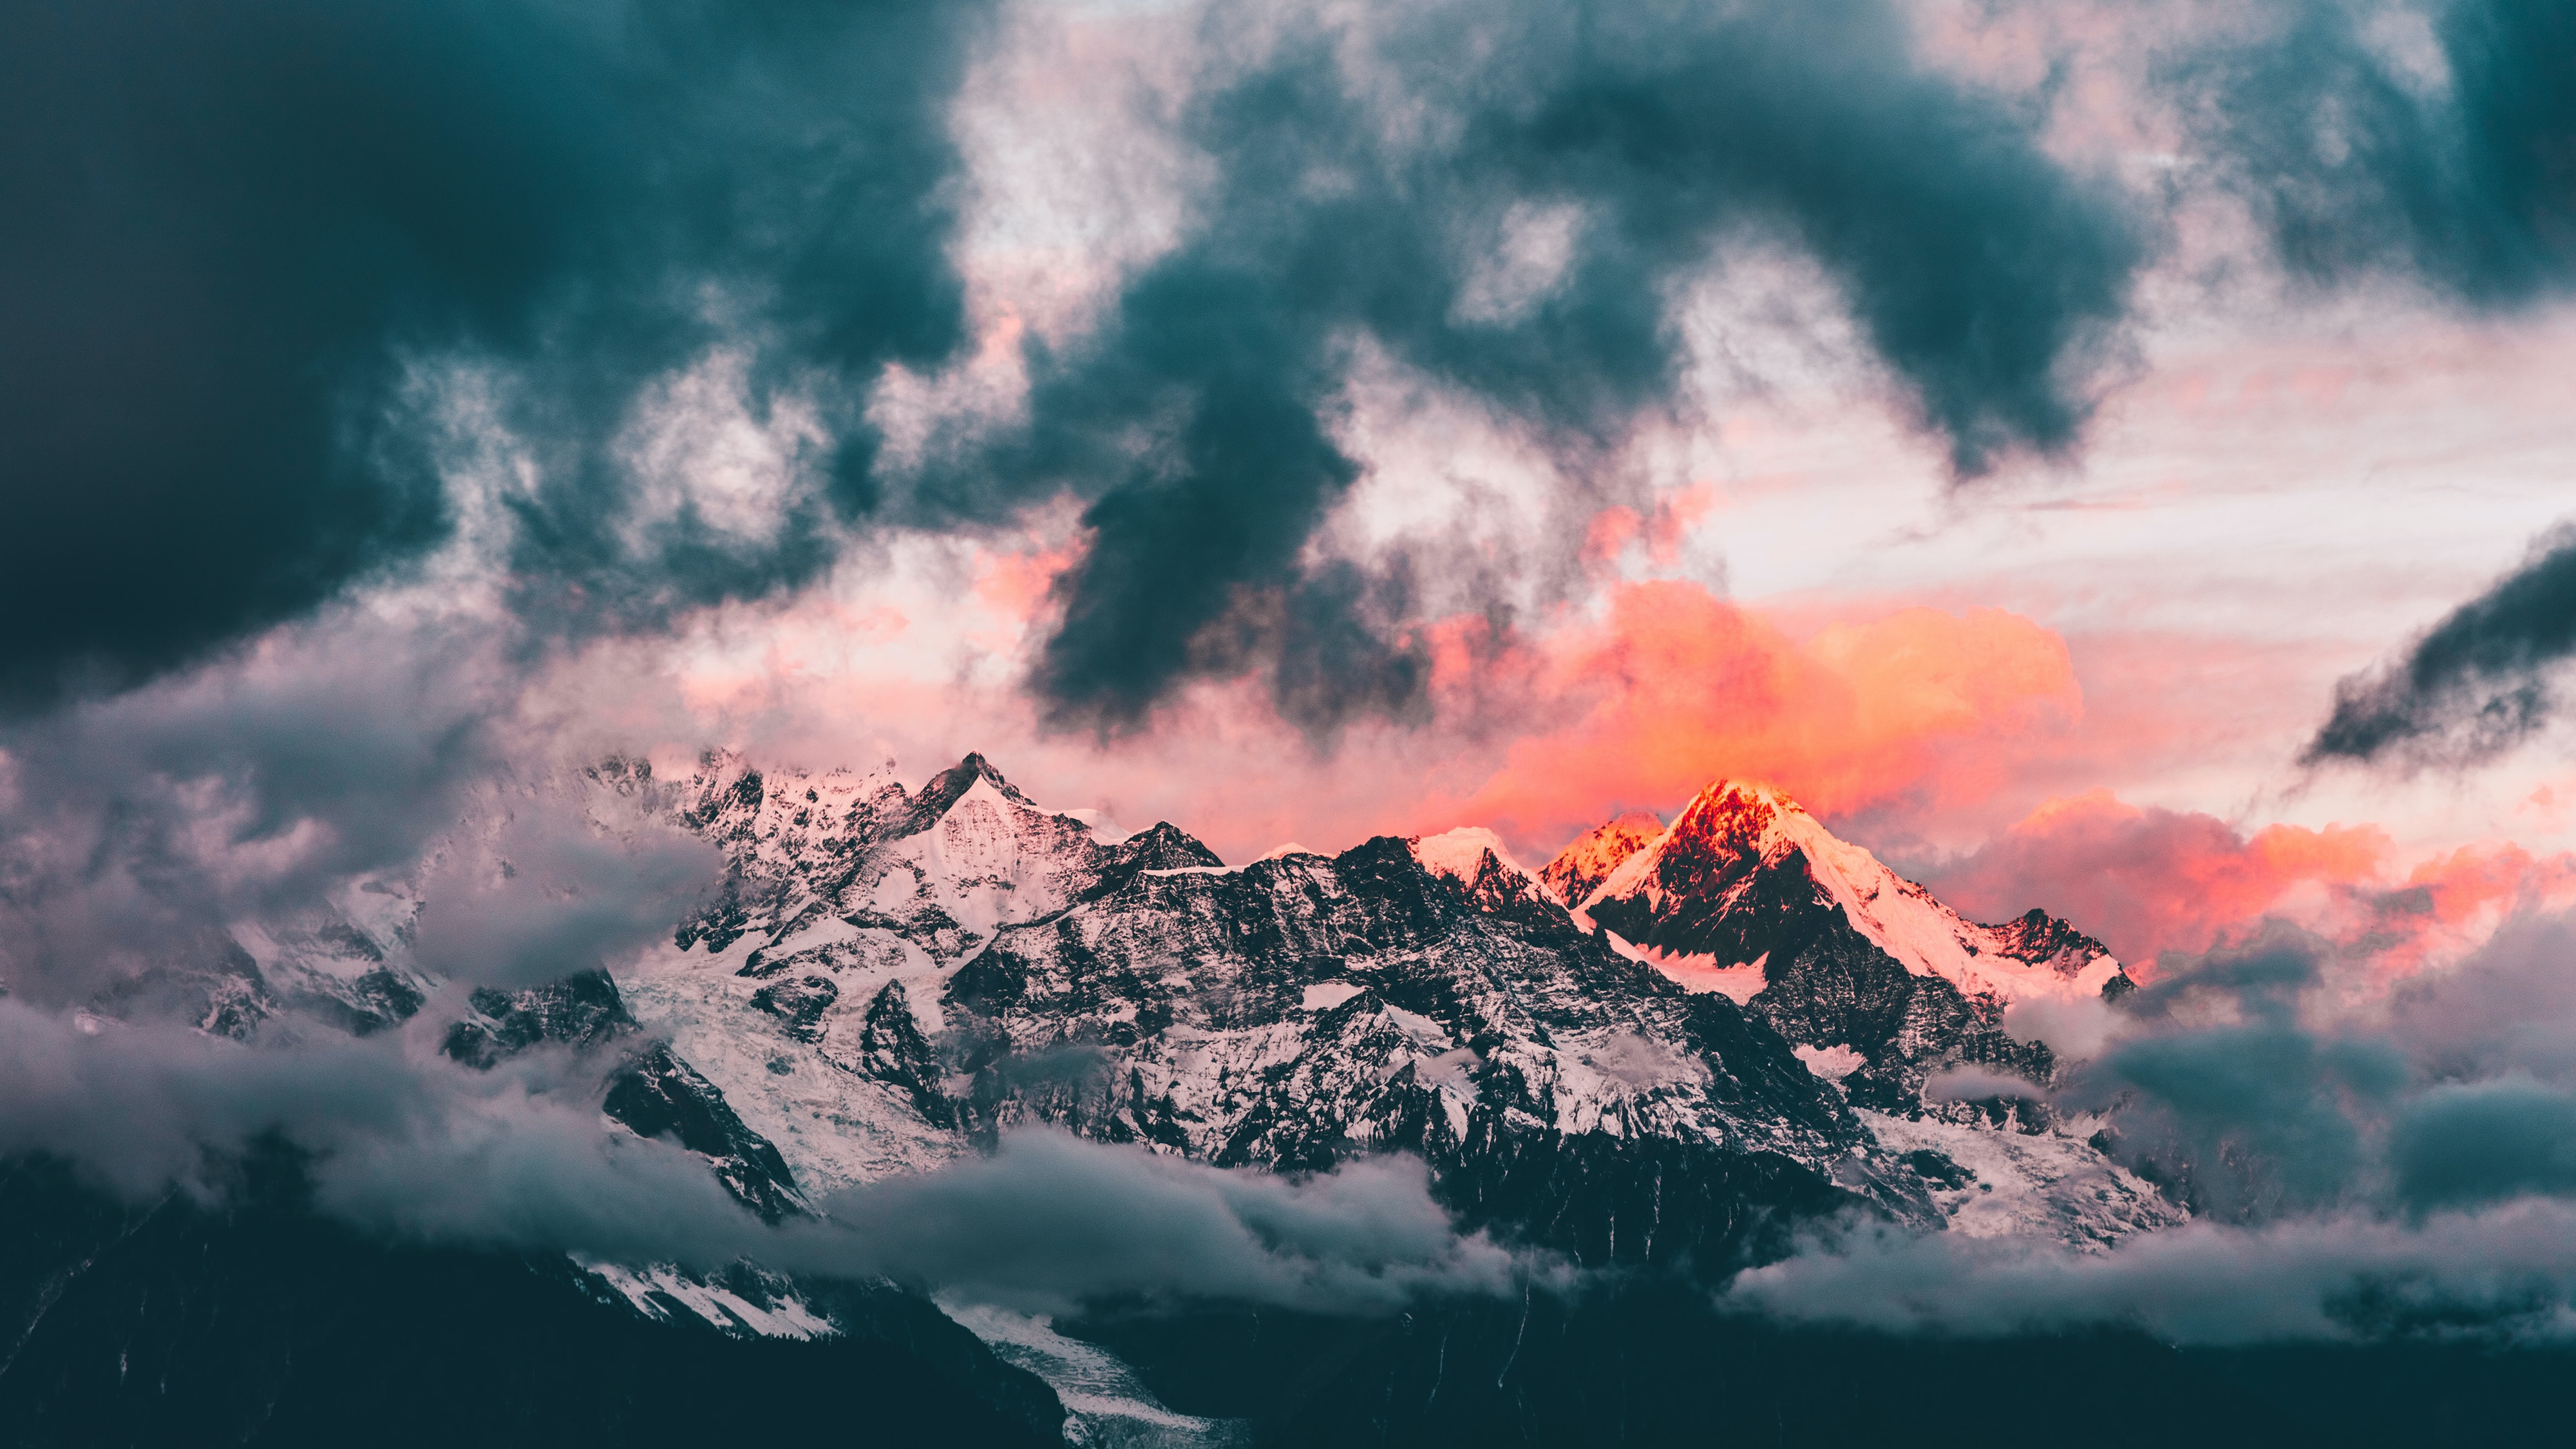 iced-capped mountain under stormy sky